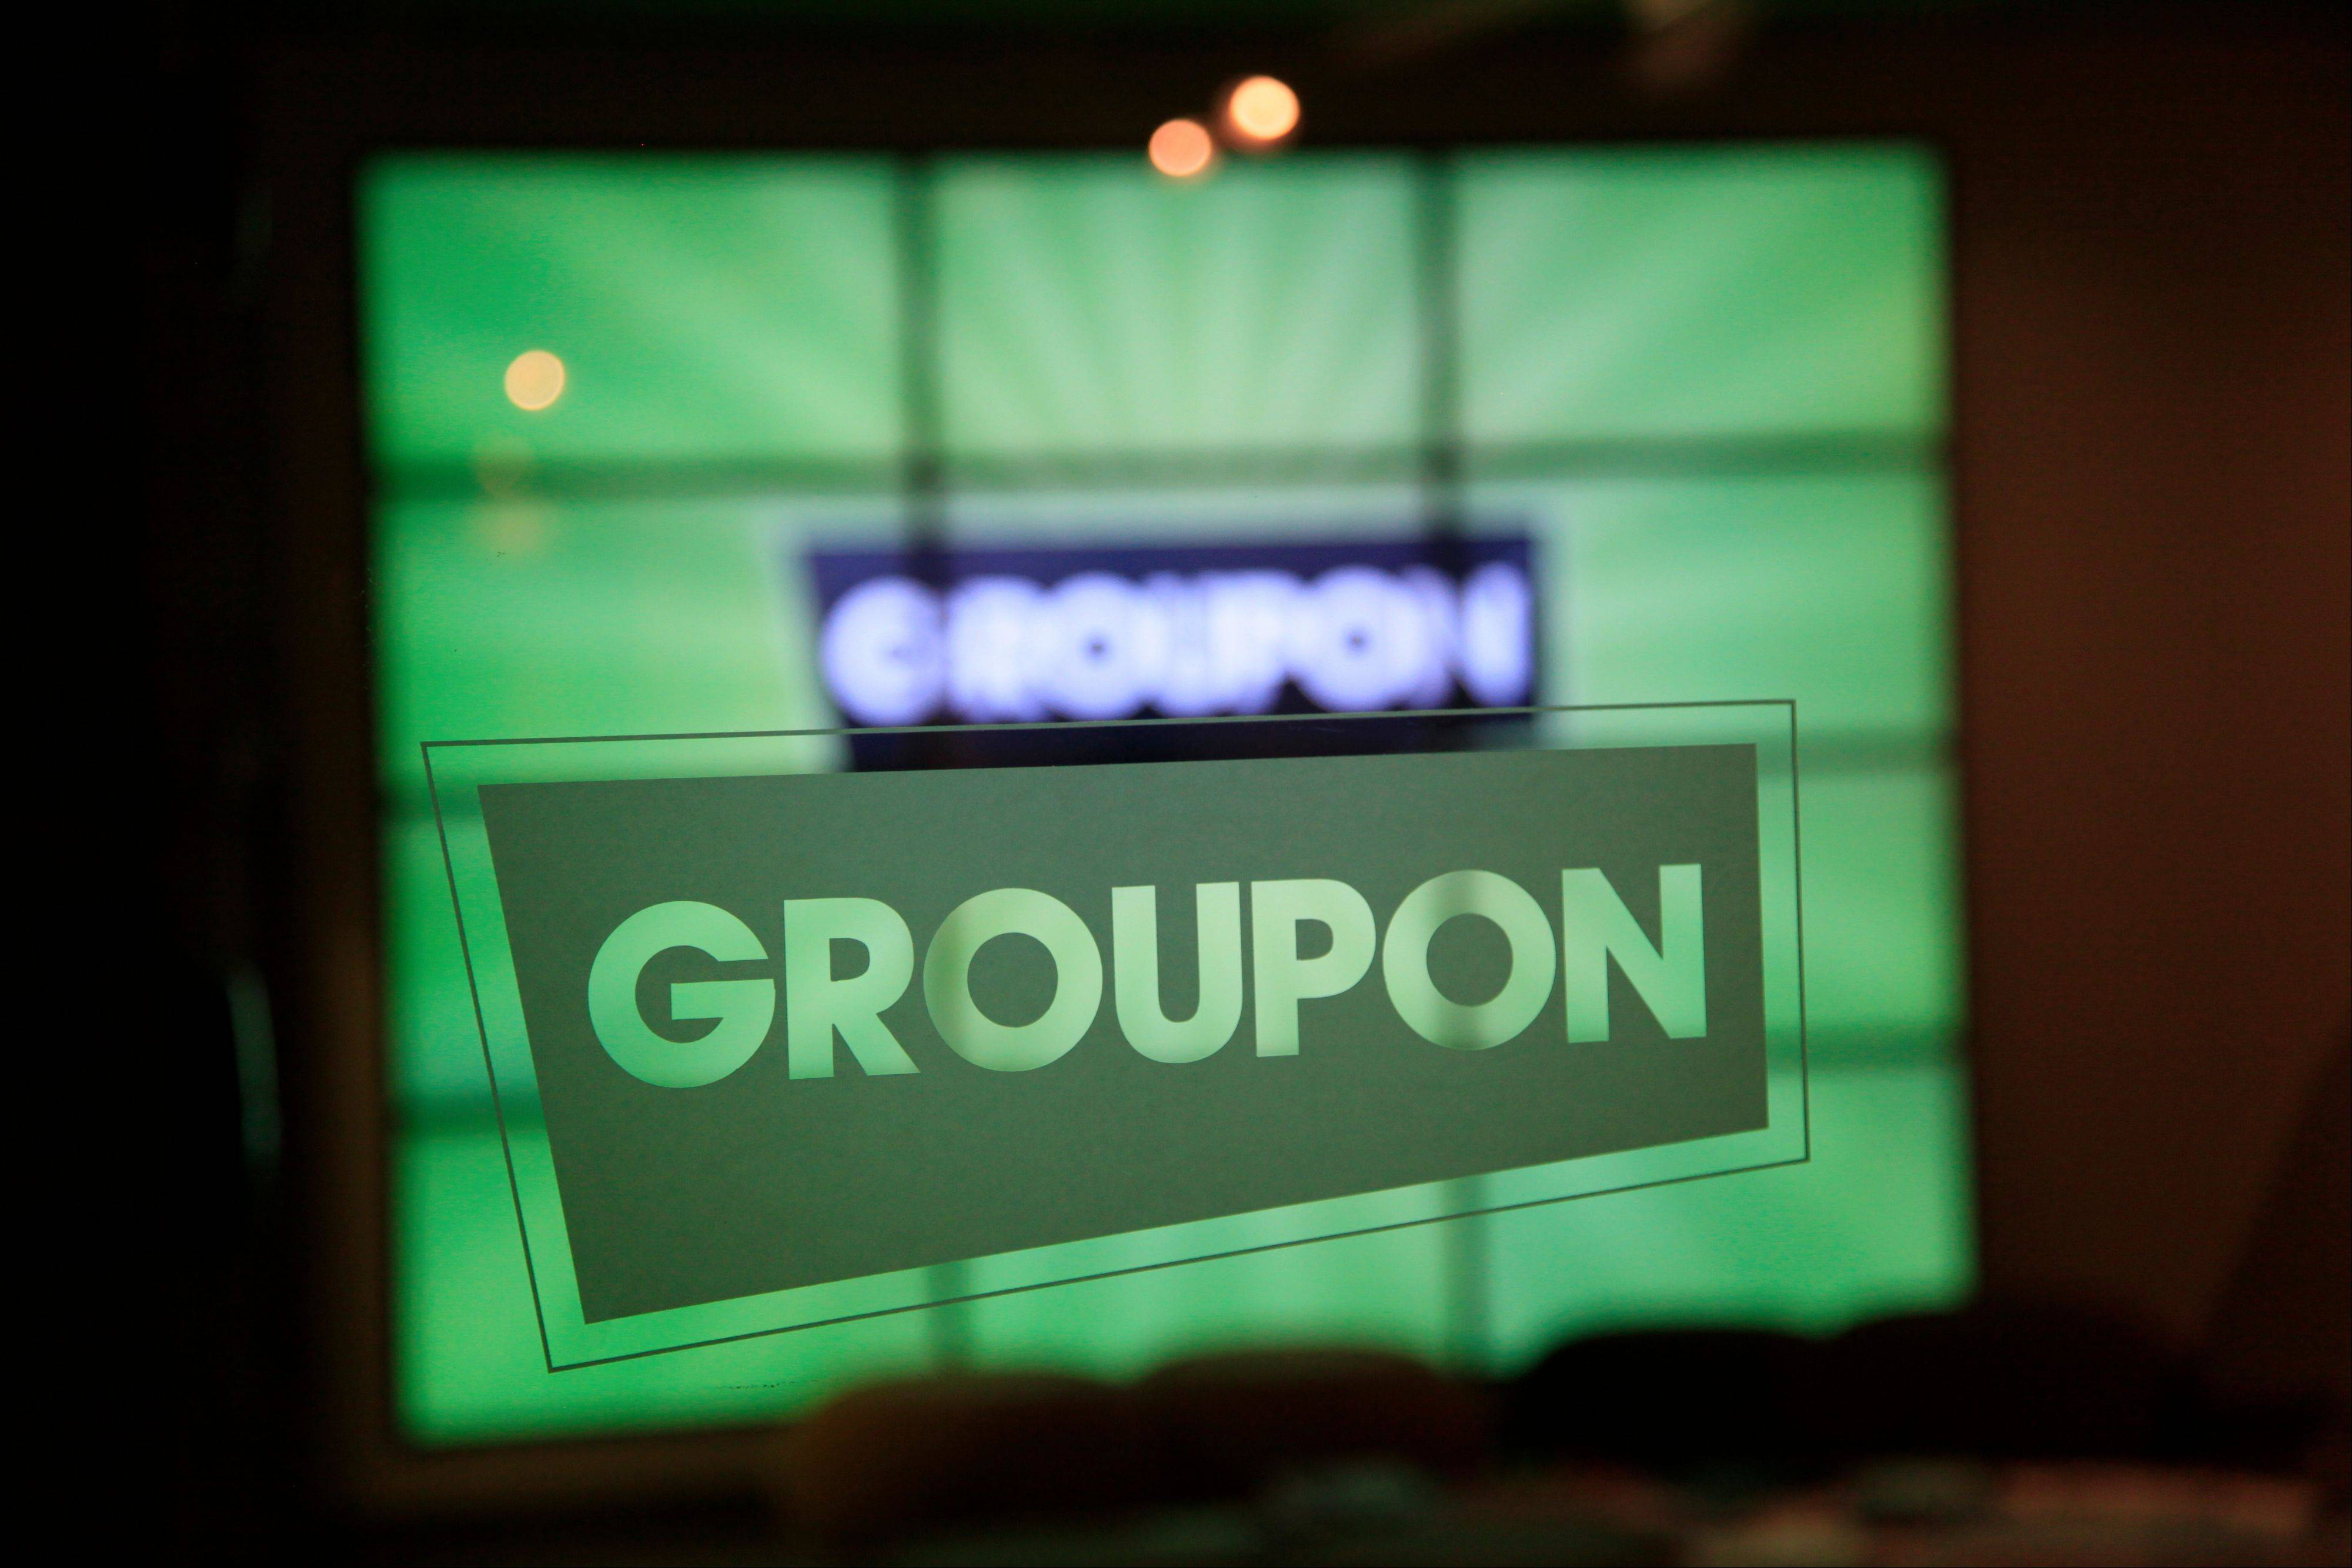 Groupon, the largest provider of online daily deals in the U.S., halted gun-related offers amid nationwide debate about weapons sales following a school massacre in Newtown, Connecticut.